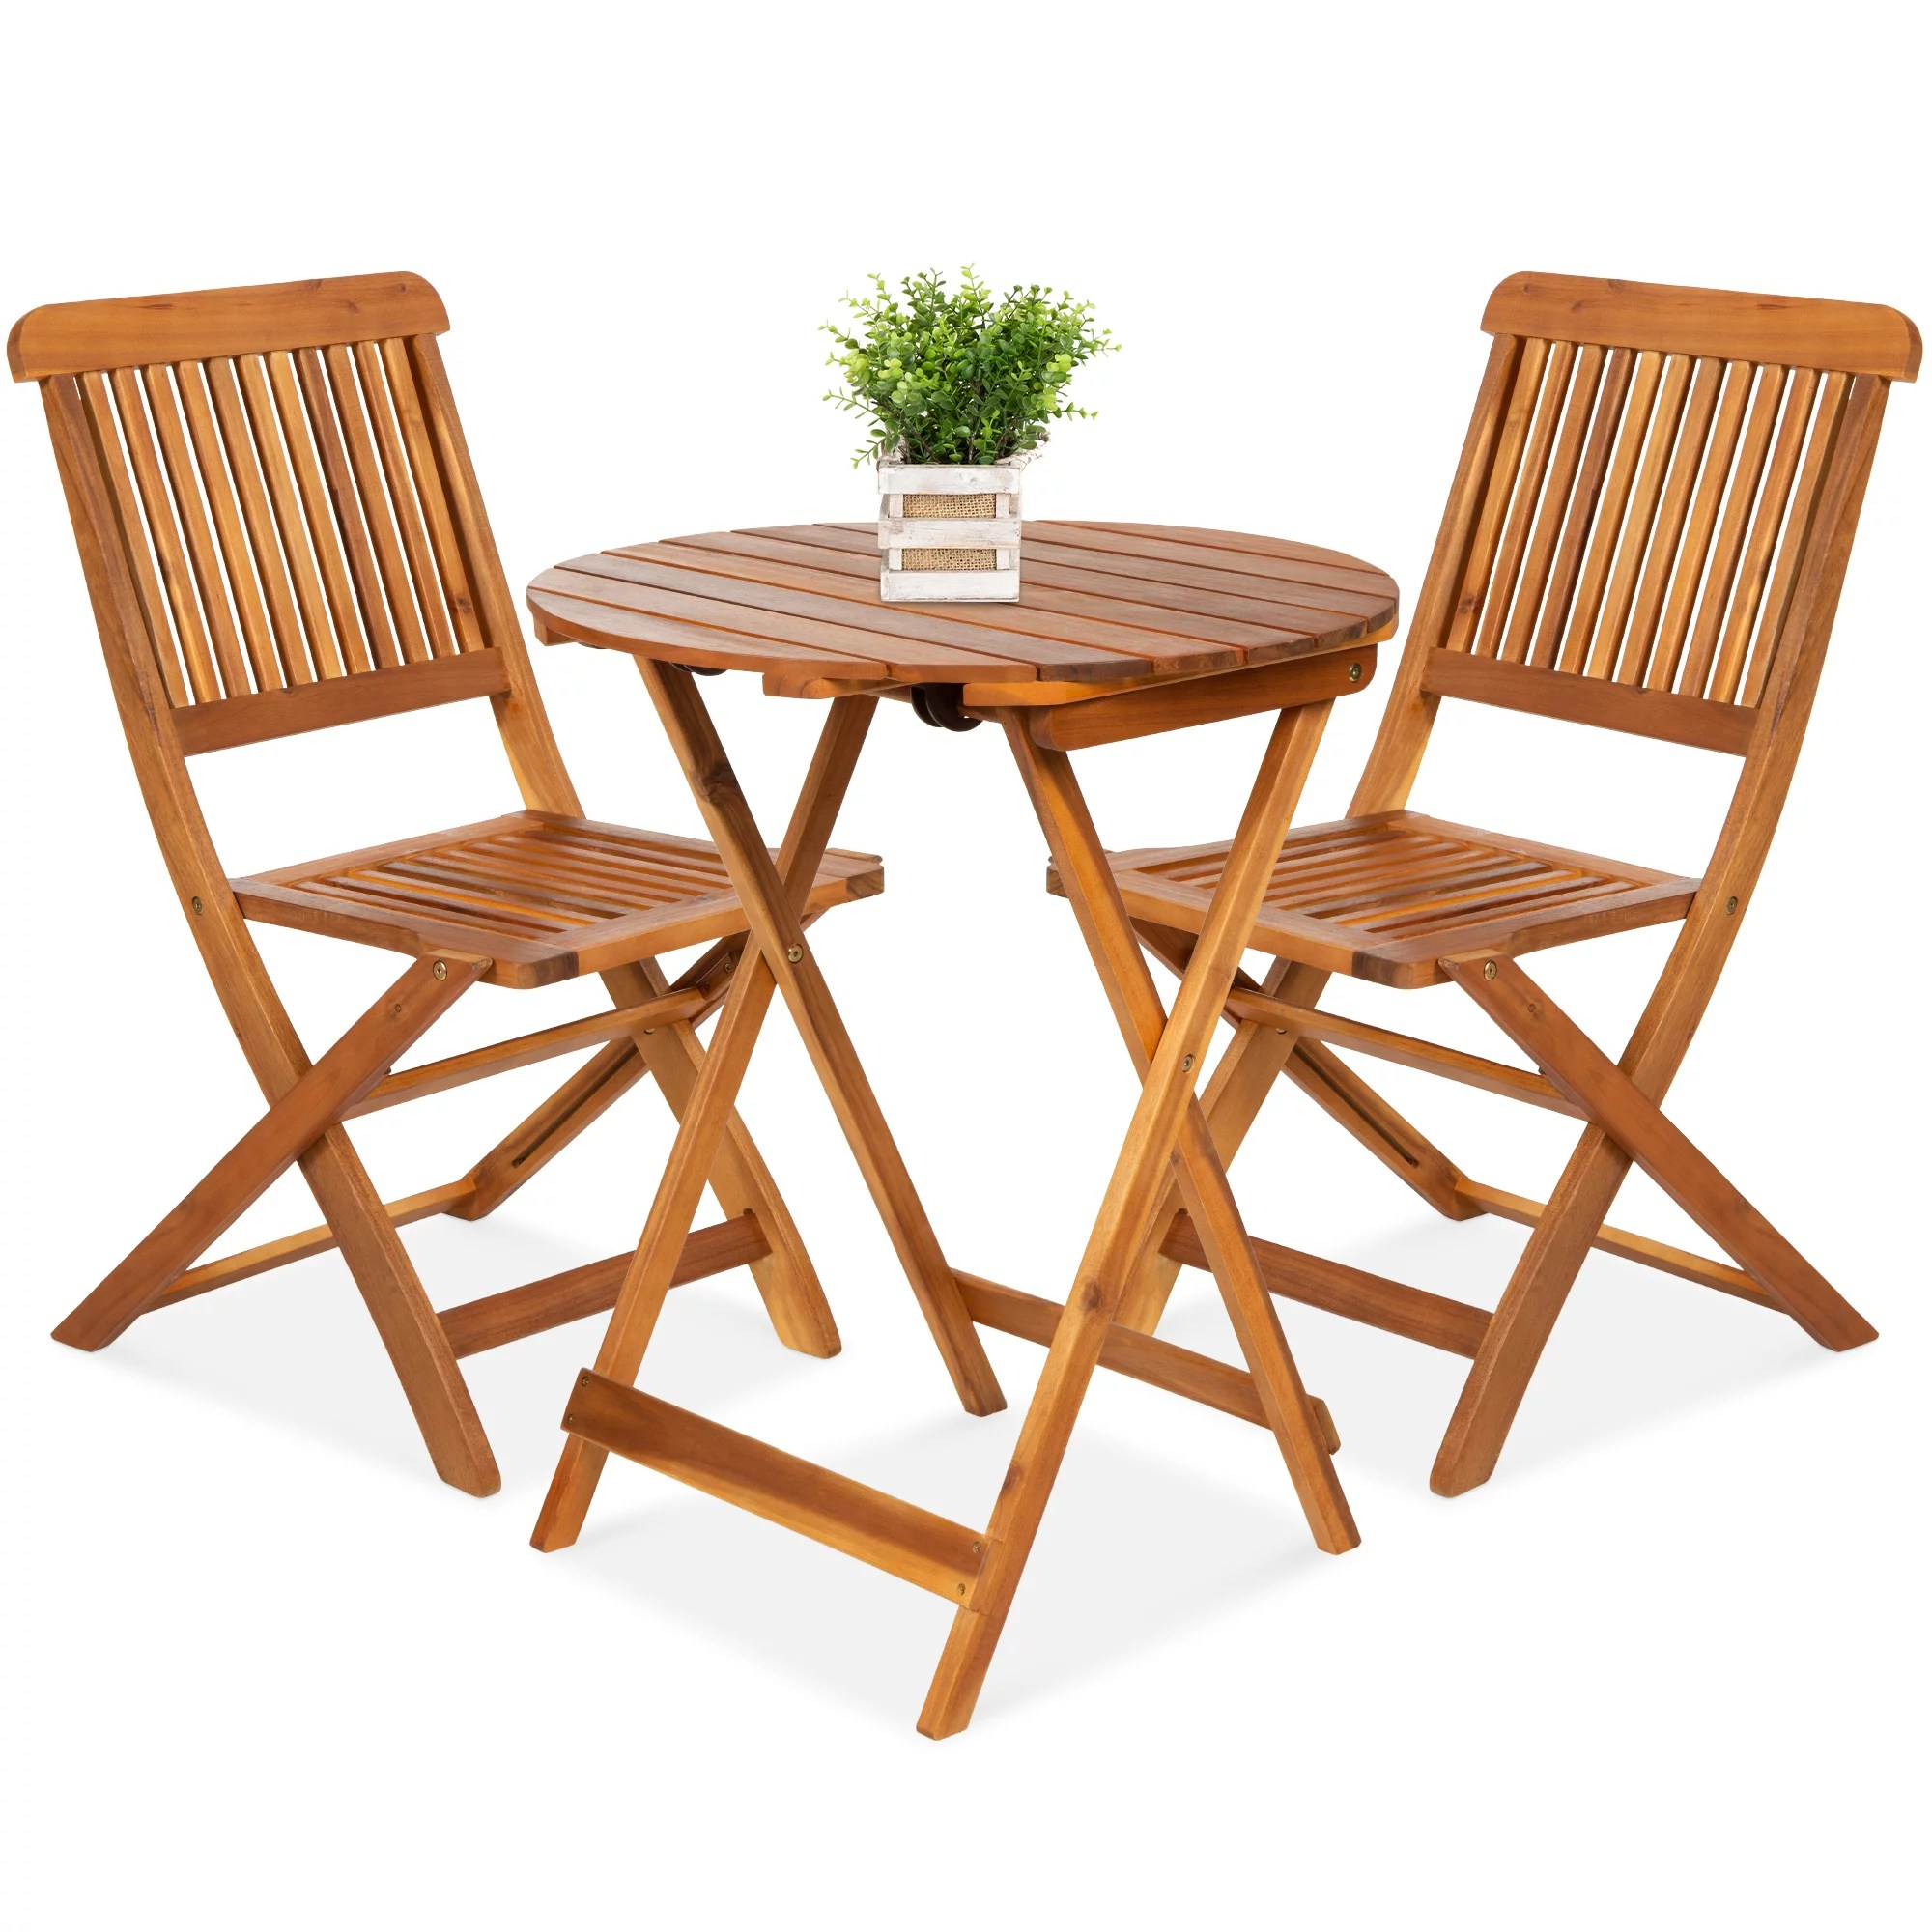 best choice products 3 piece acacia wood bistro set folding patio furniture w 2 chairs table teak finish natural